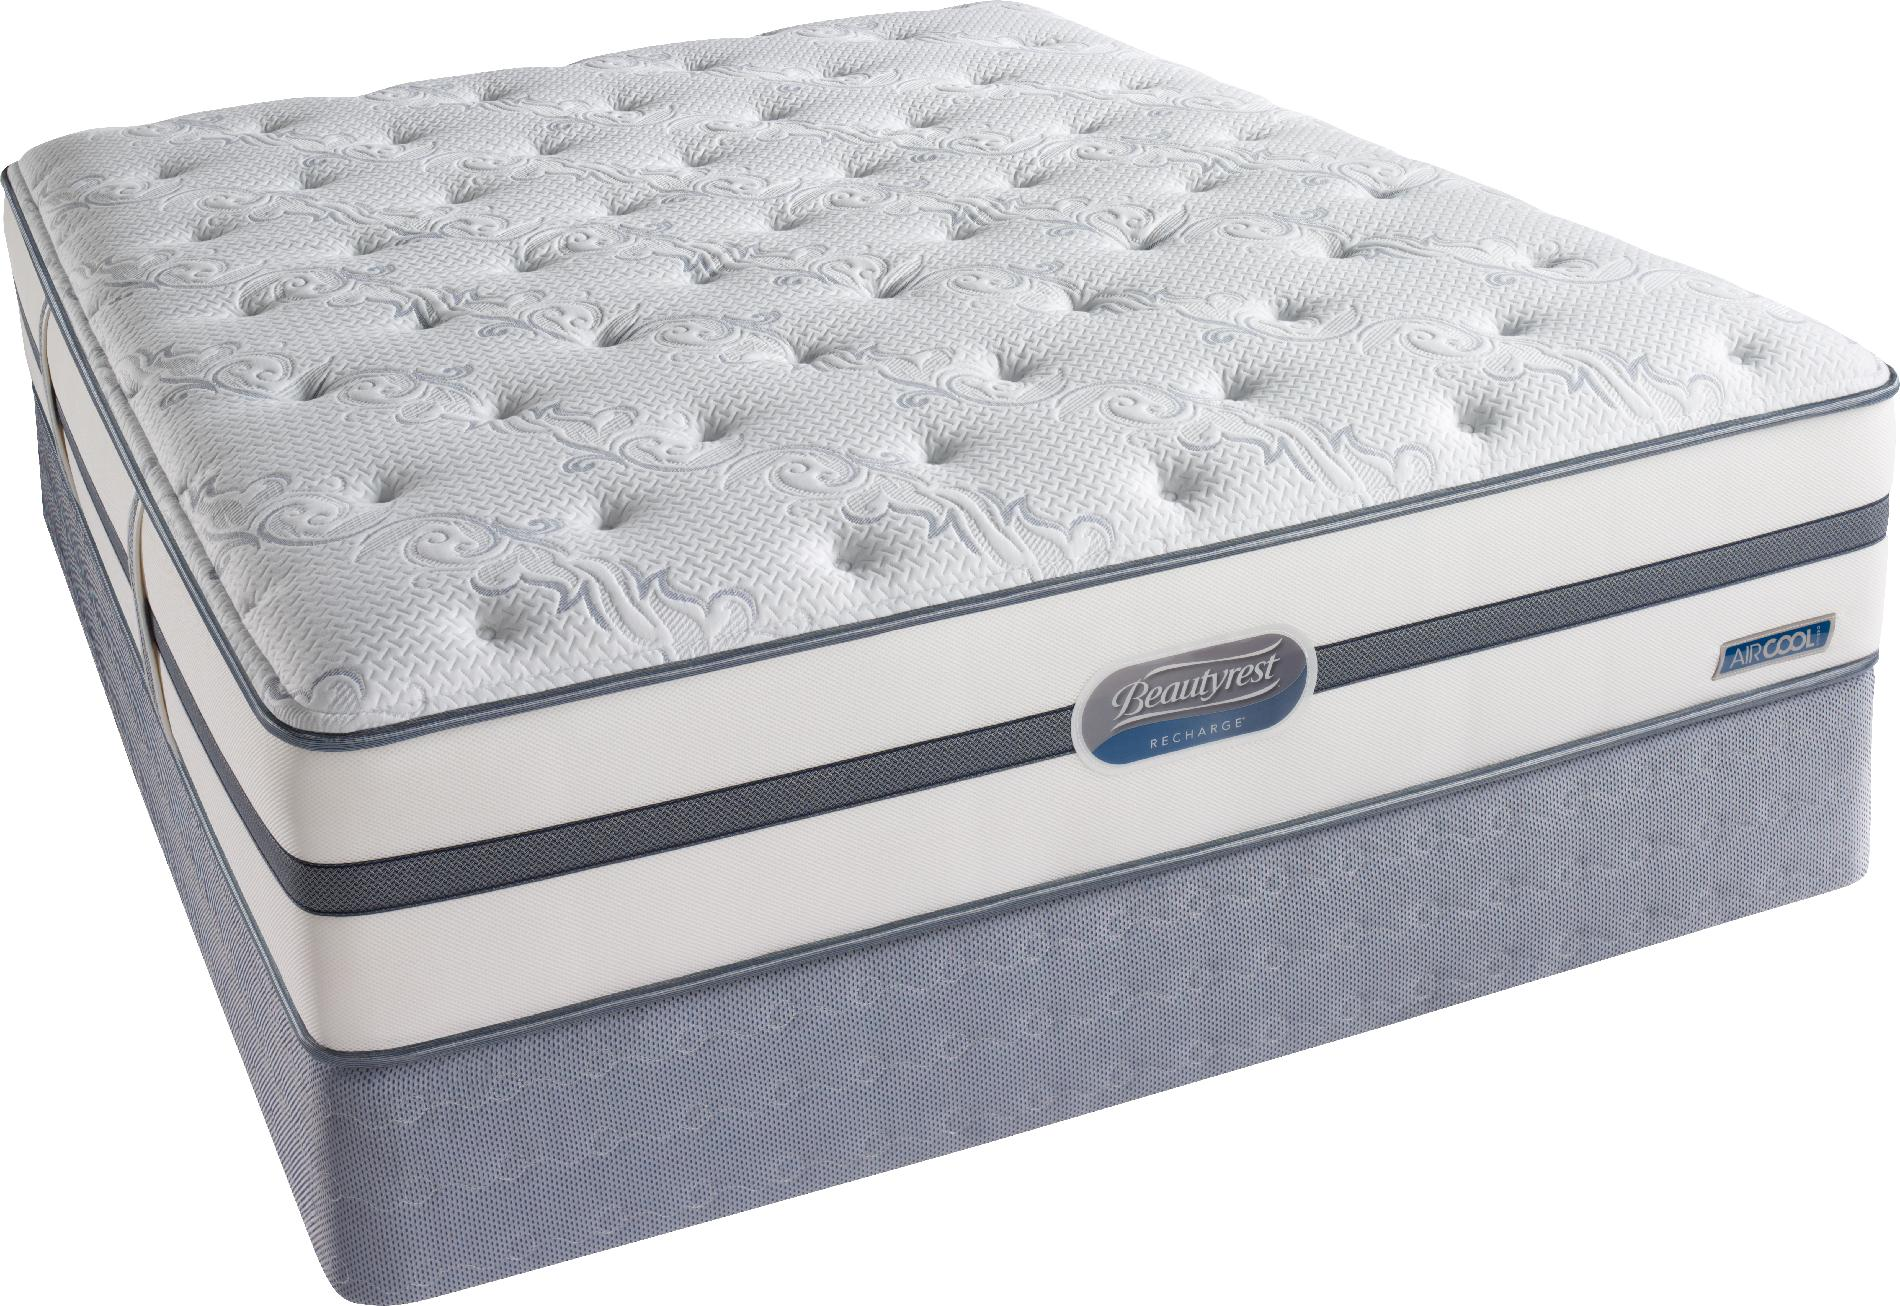 Long-Lake-Luxury-Firm-Queen-Mattress